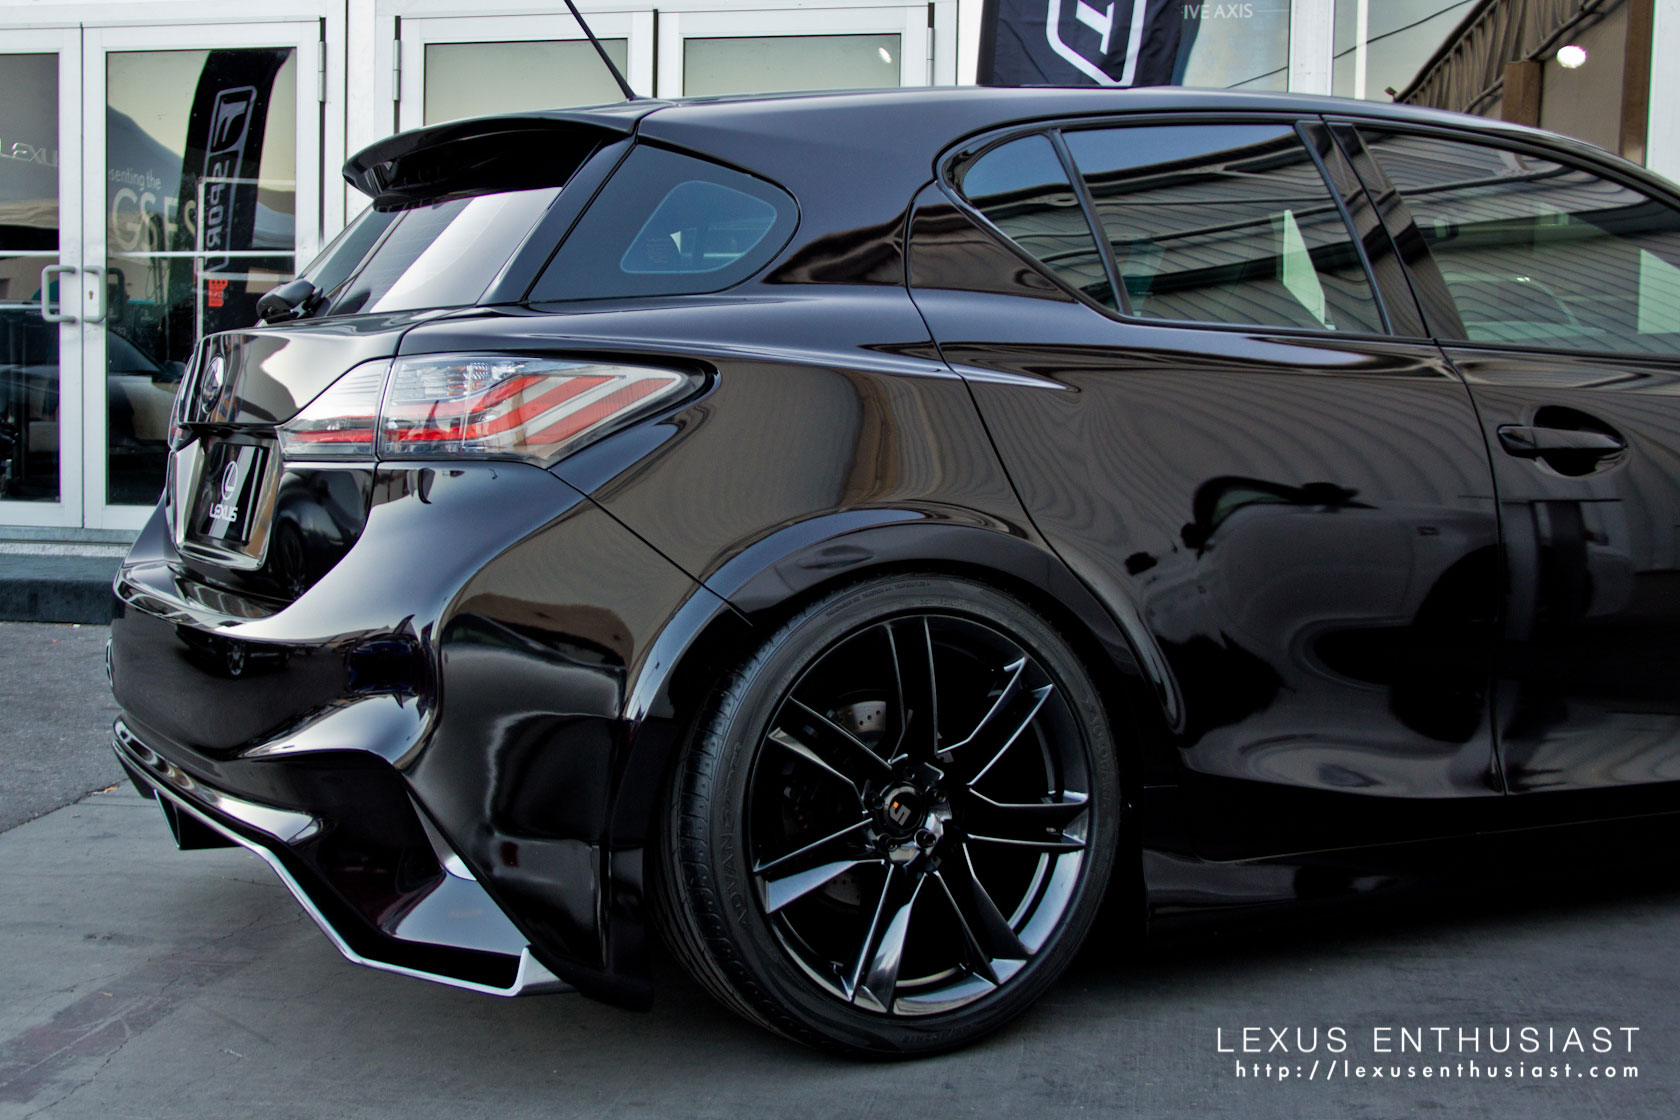 sema-lexus-project-ct-five-axis-3.jpg